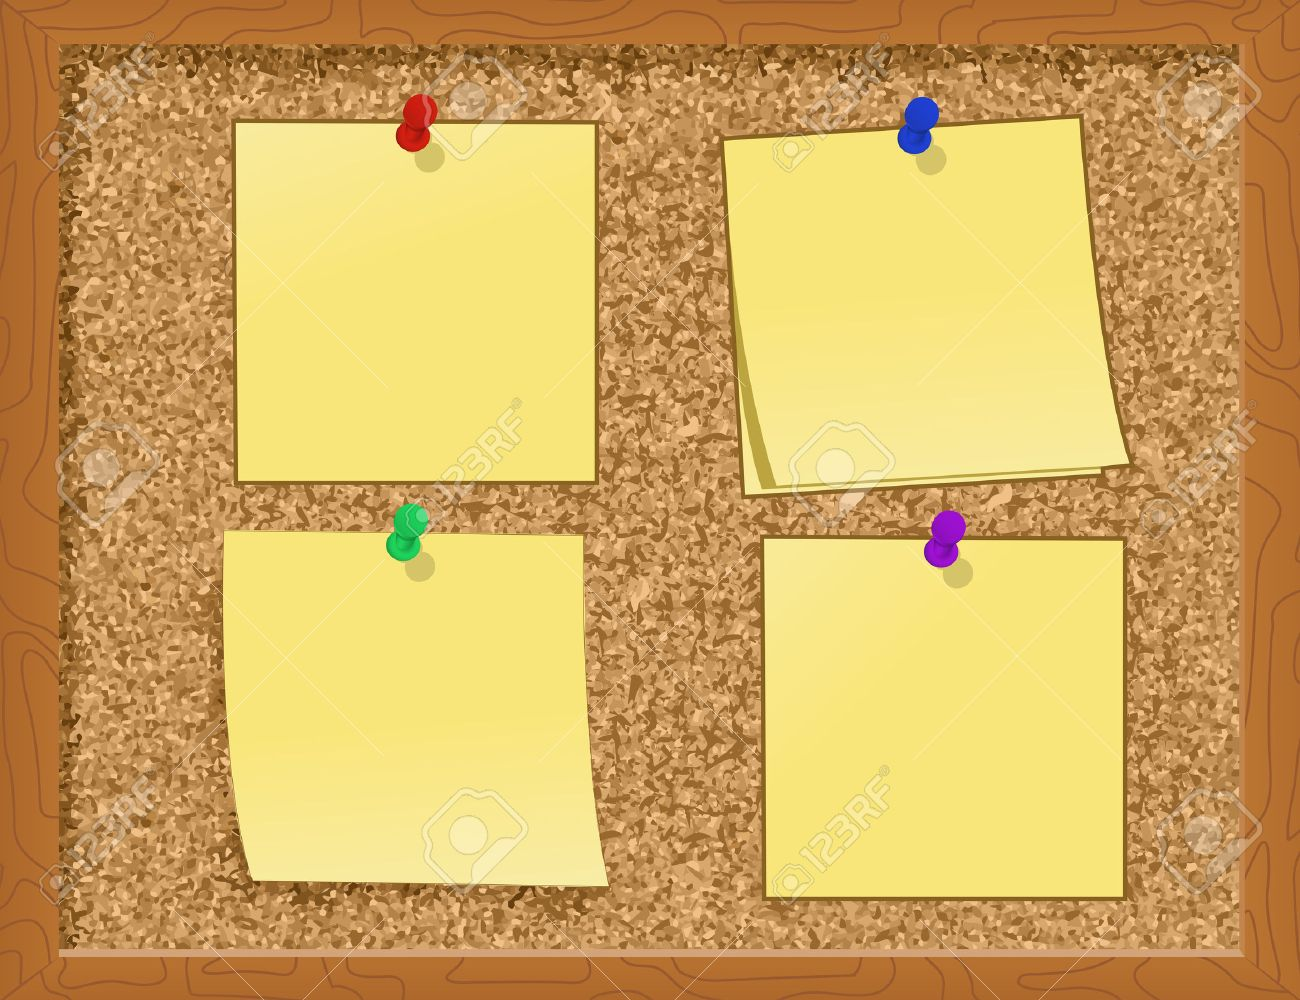 hight resolution of notes pinned to a cork board illustration stock vector 7988796